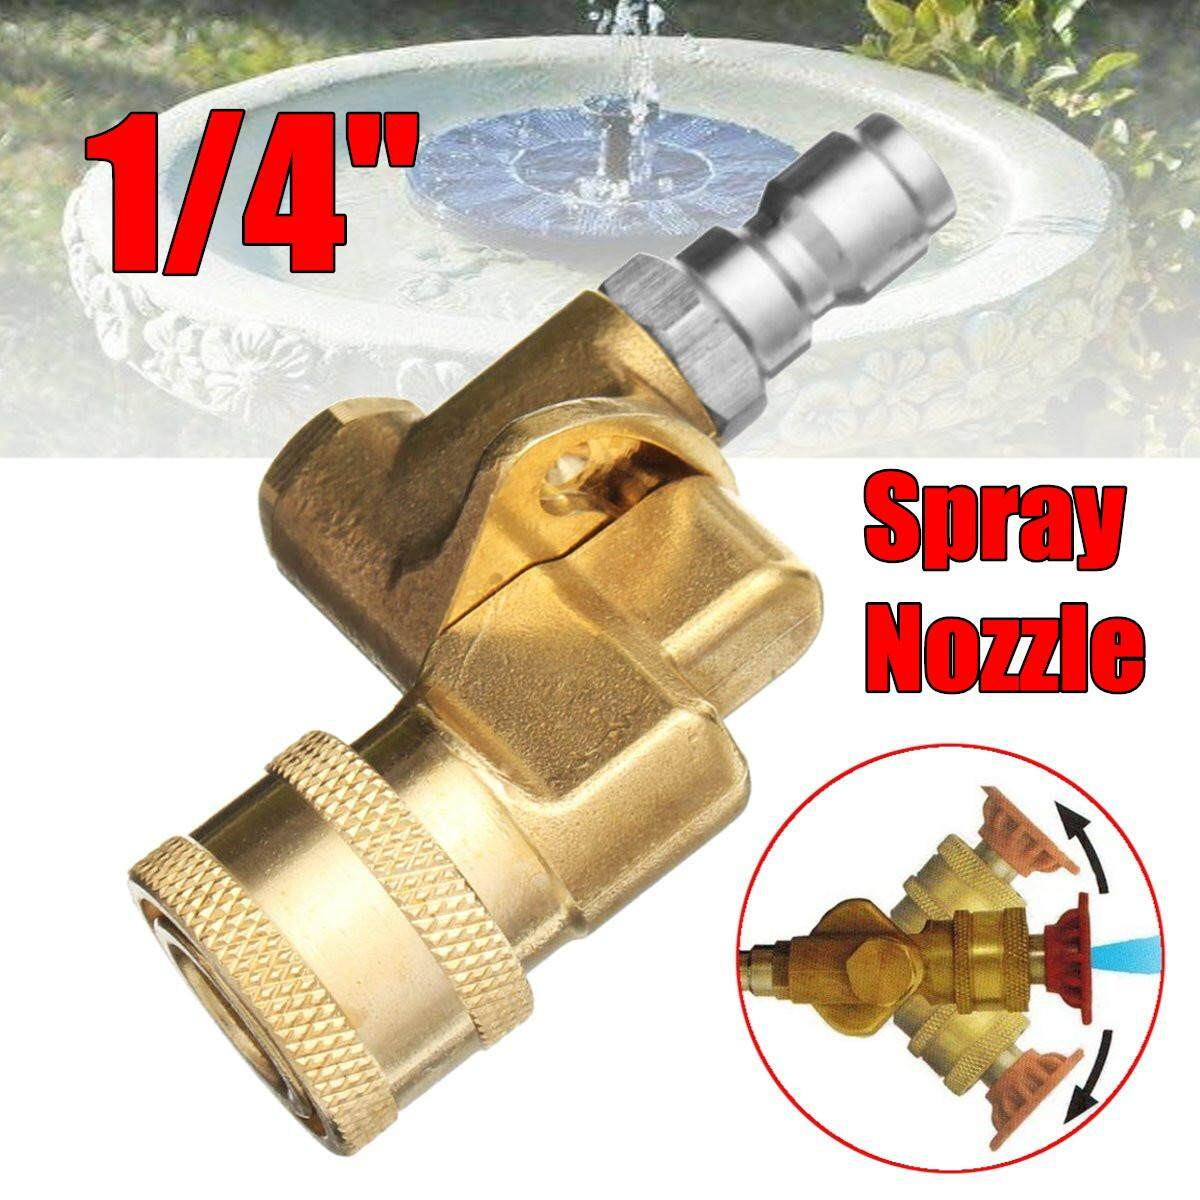 High Pressure Washer Spray Nozzle Variety Degrees 1/4 Adjustable Quick Connect